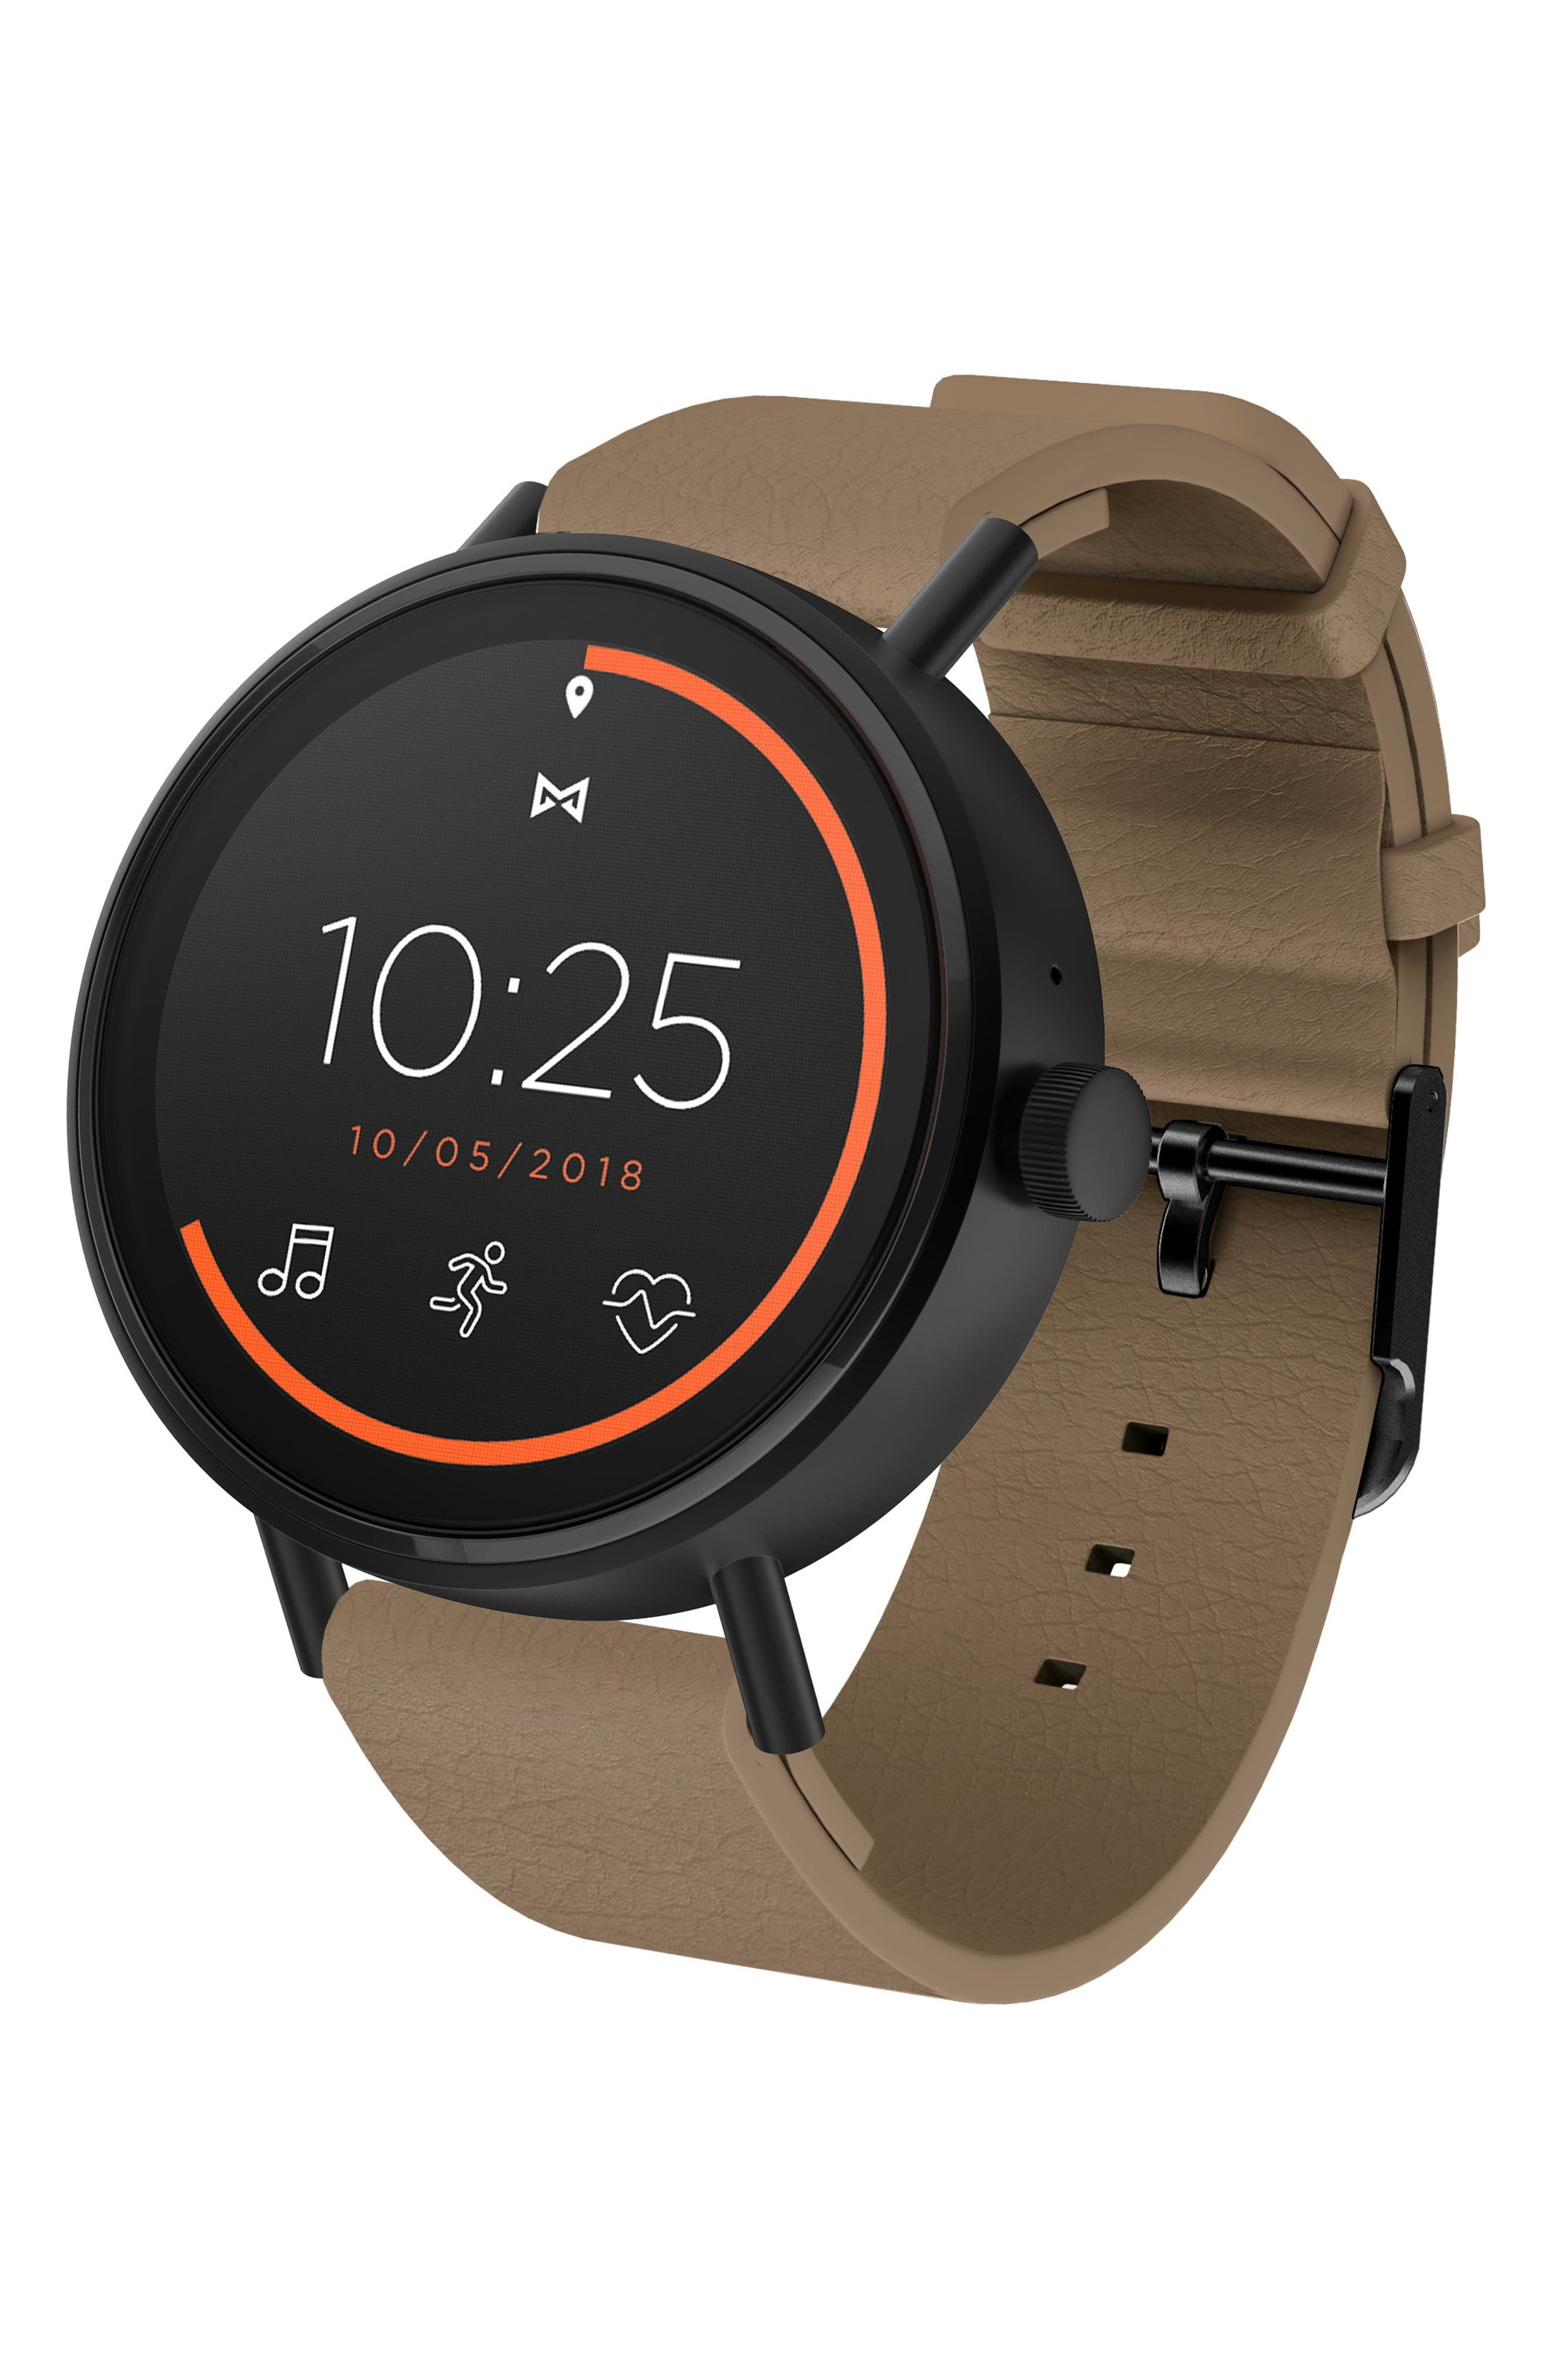 MISFIT Vapor 2 Silicone Strap Smart Watch, 46Mm in Brown/ Black